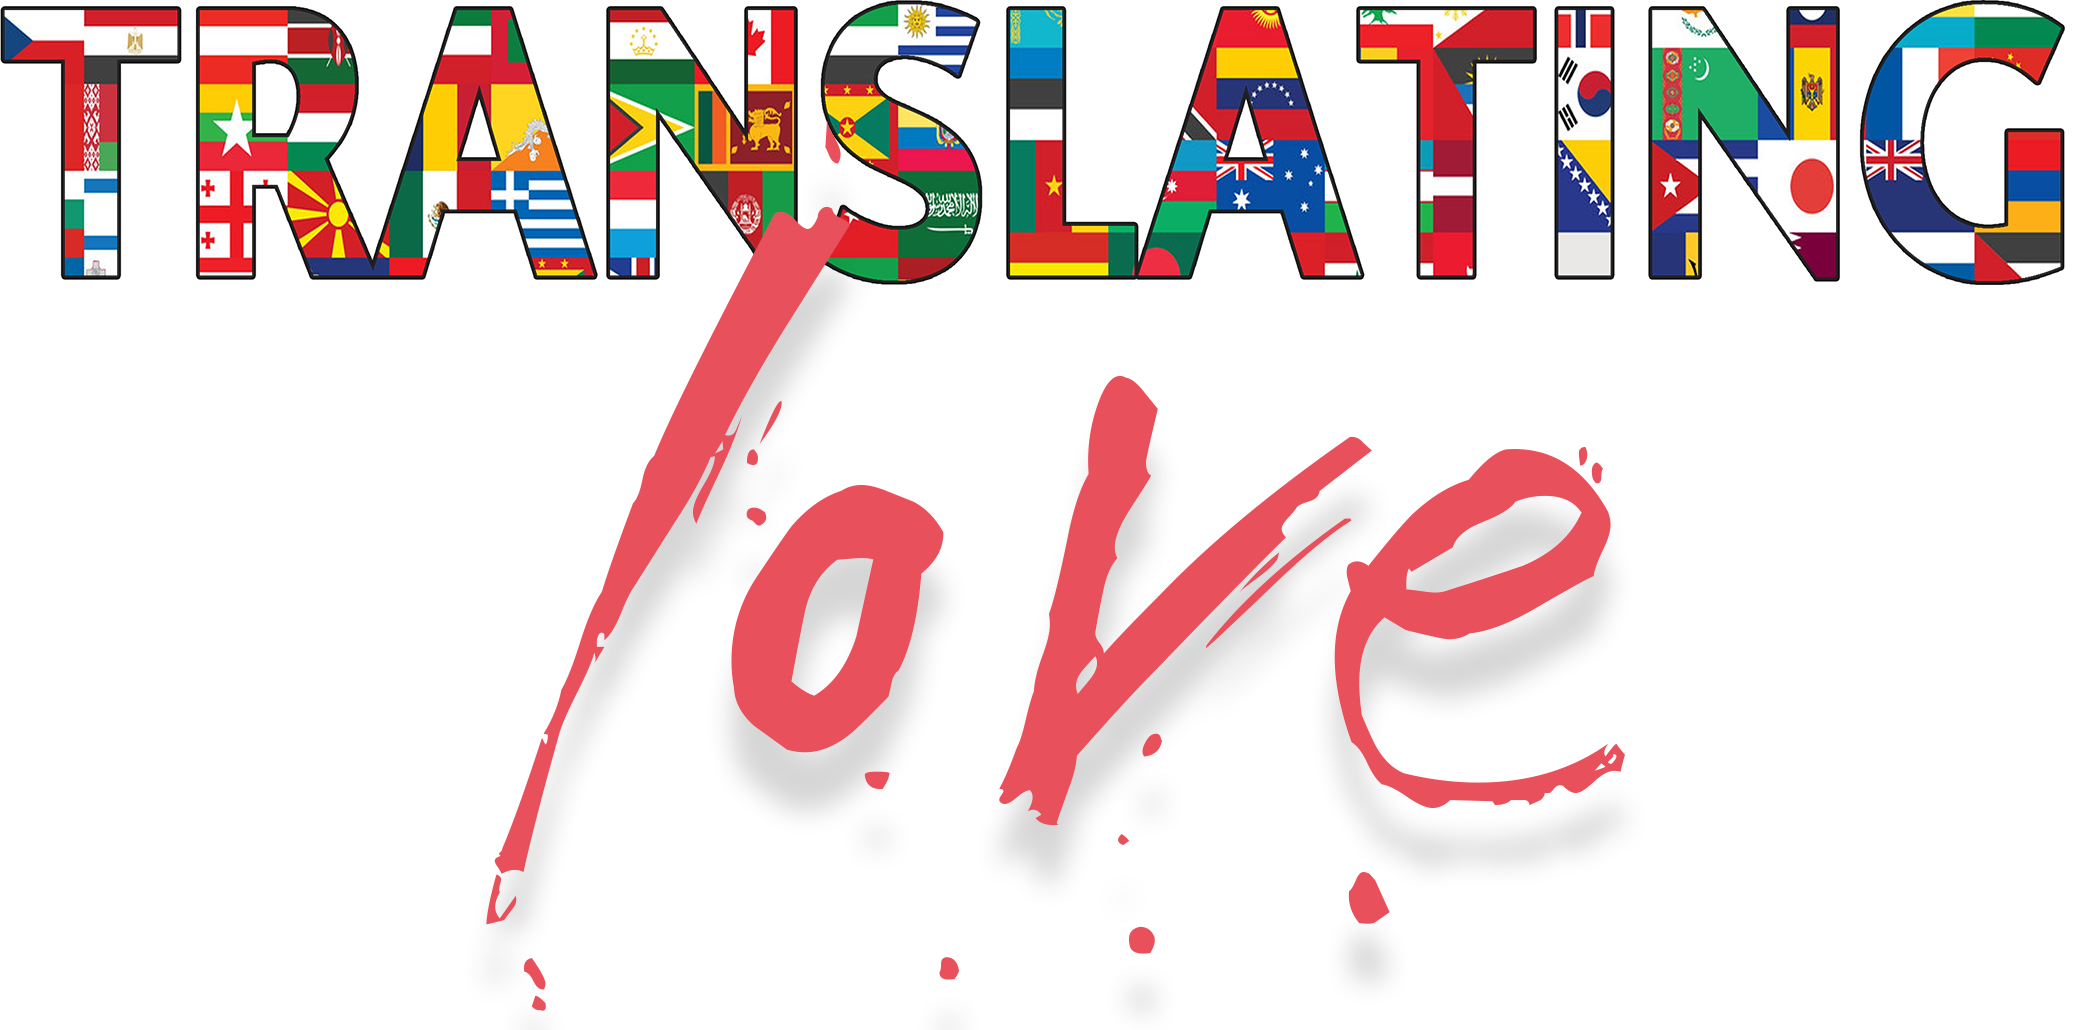 Translating Love